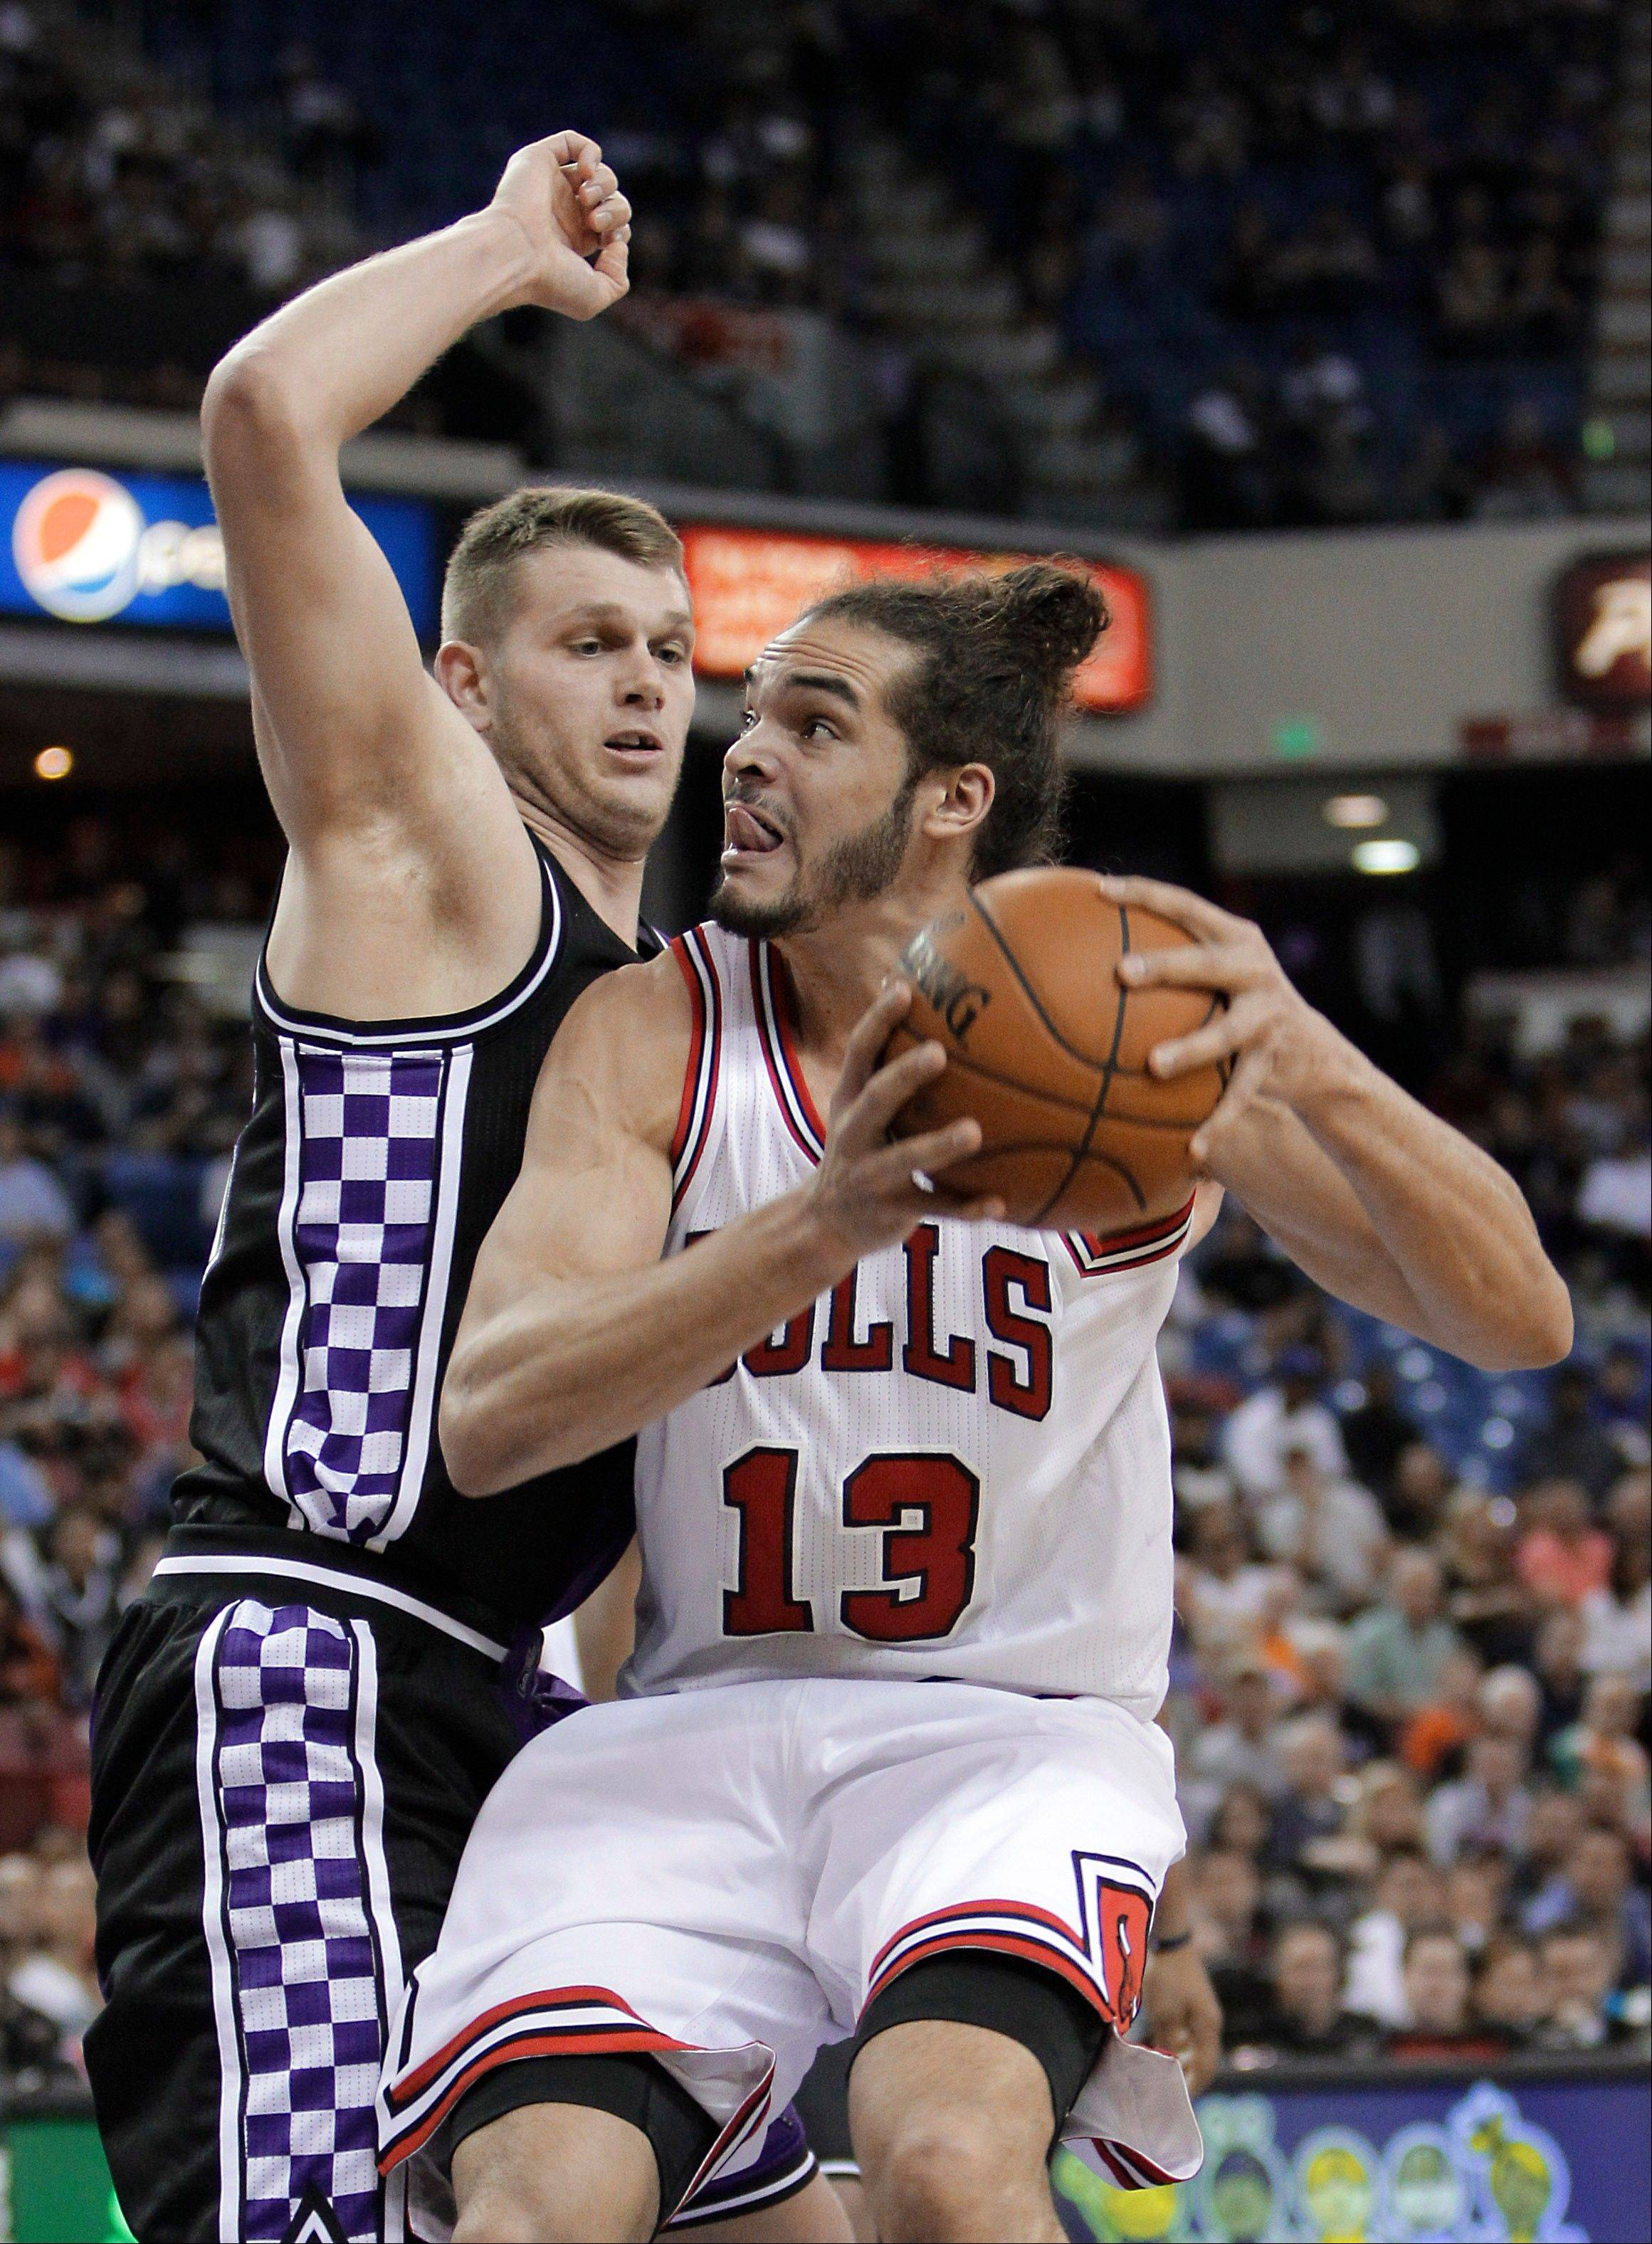 Bulls center Joakim Noah looks to go to the basket against Sacramento Kings center Cole Aldrich during the first quarter Wednesday night.